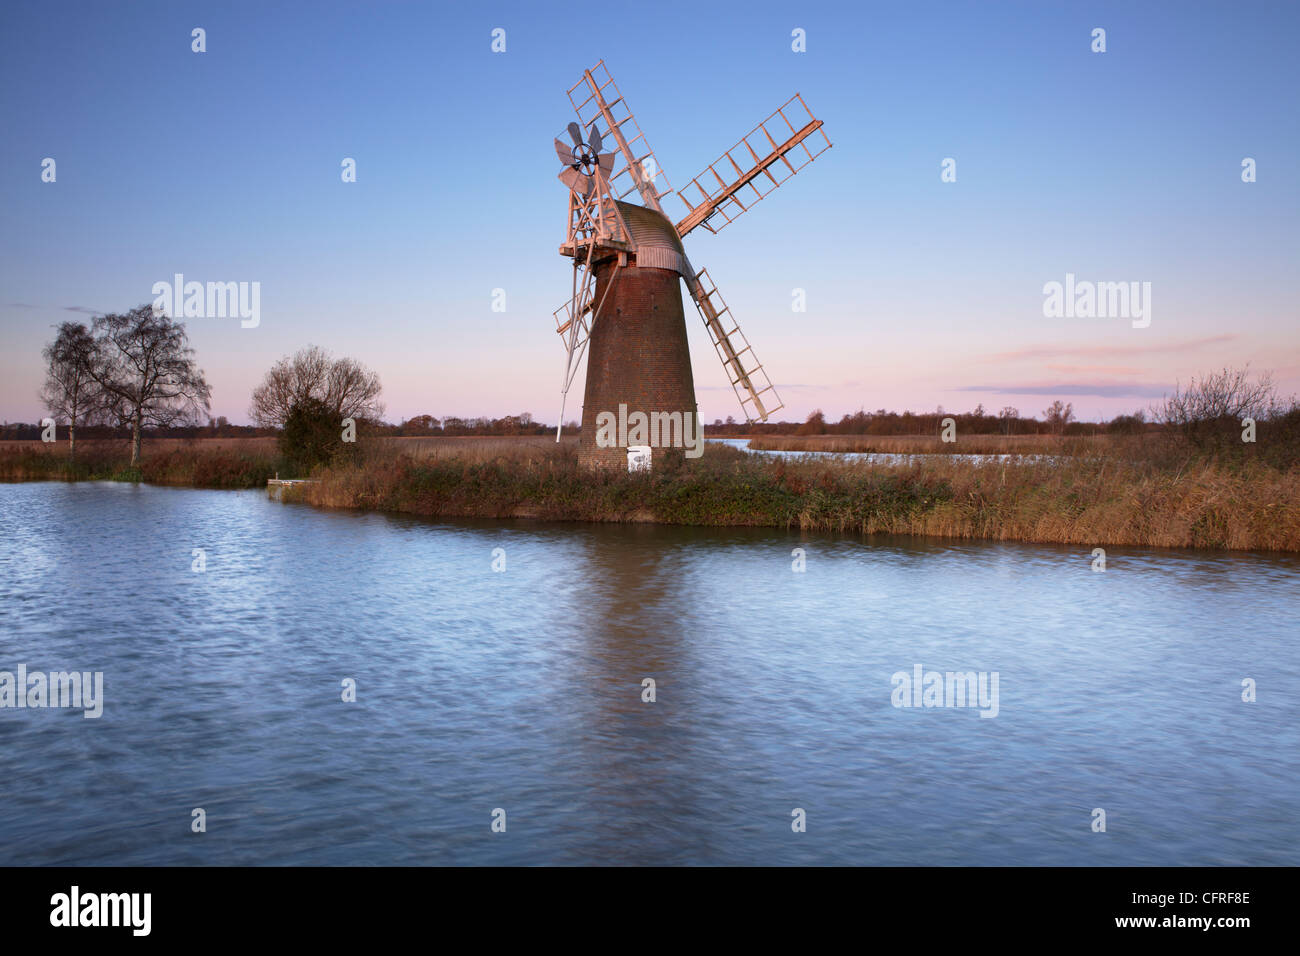 A view of Turf Fen Mill beside the River Ant at How Hill, Norfolk, England, United Kingdom, Europe - Stock Image